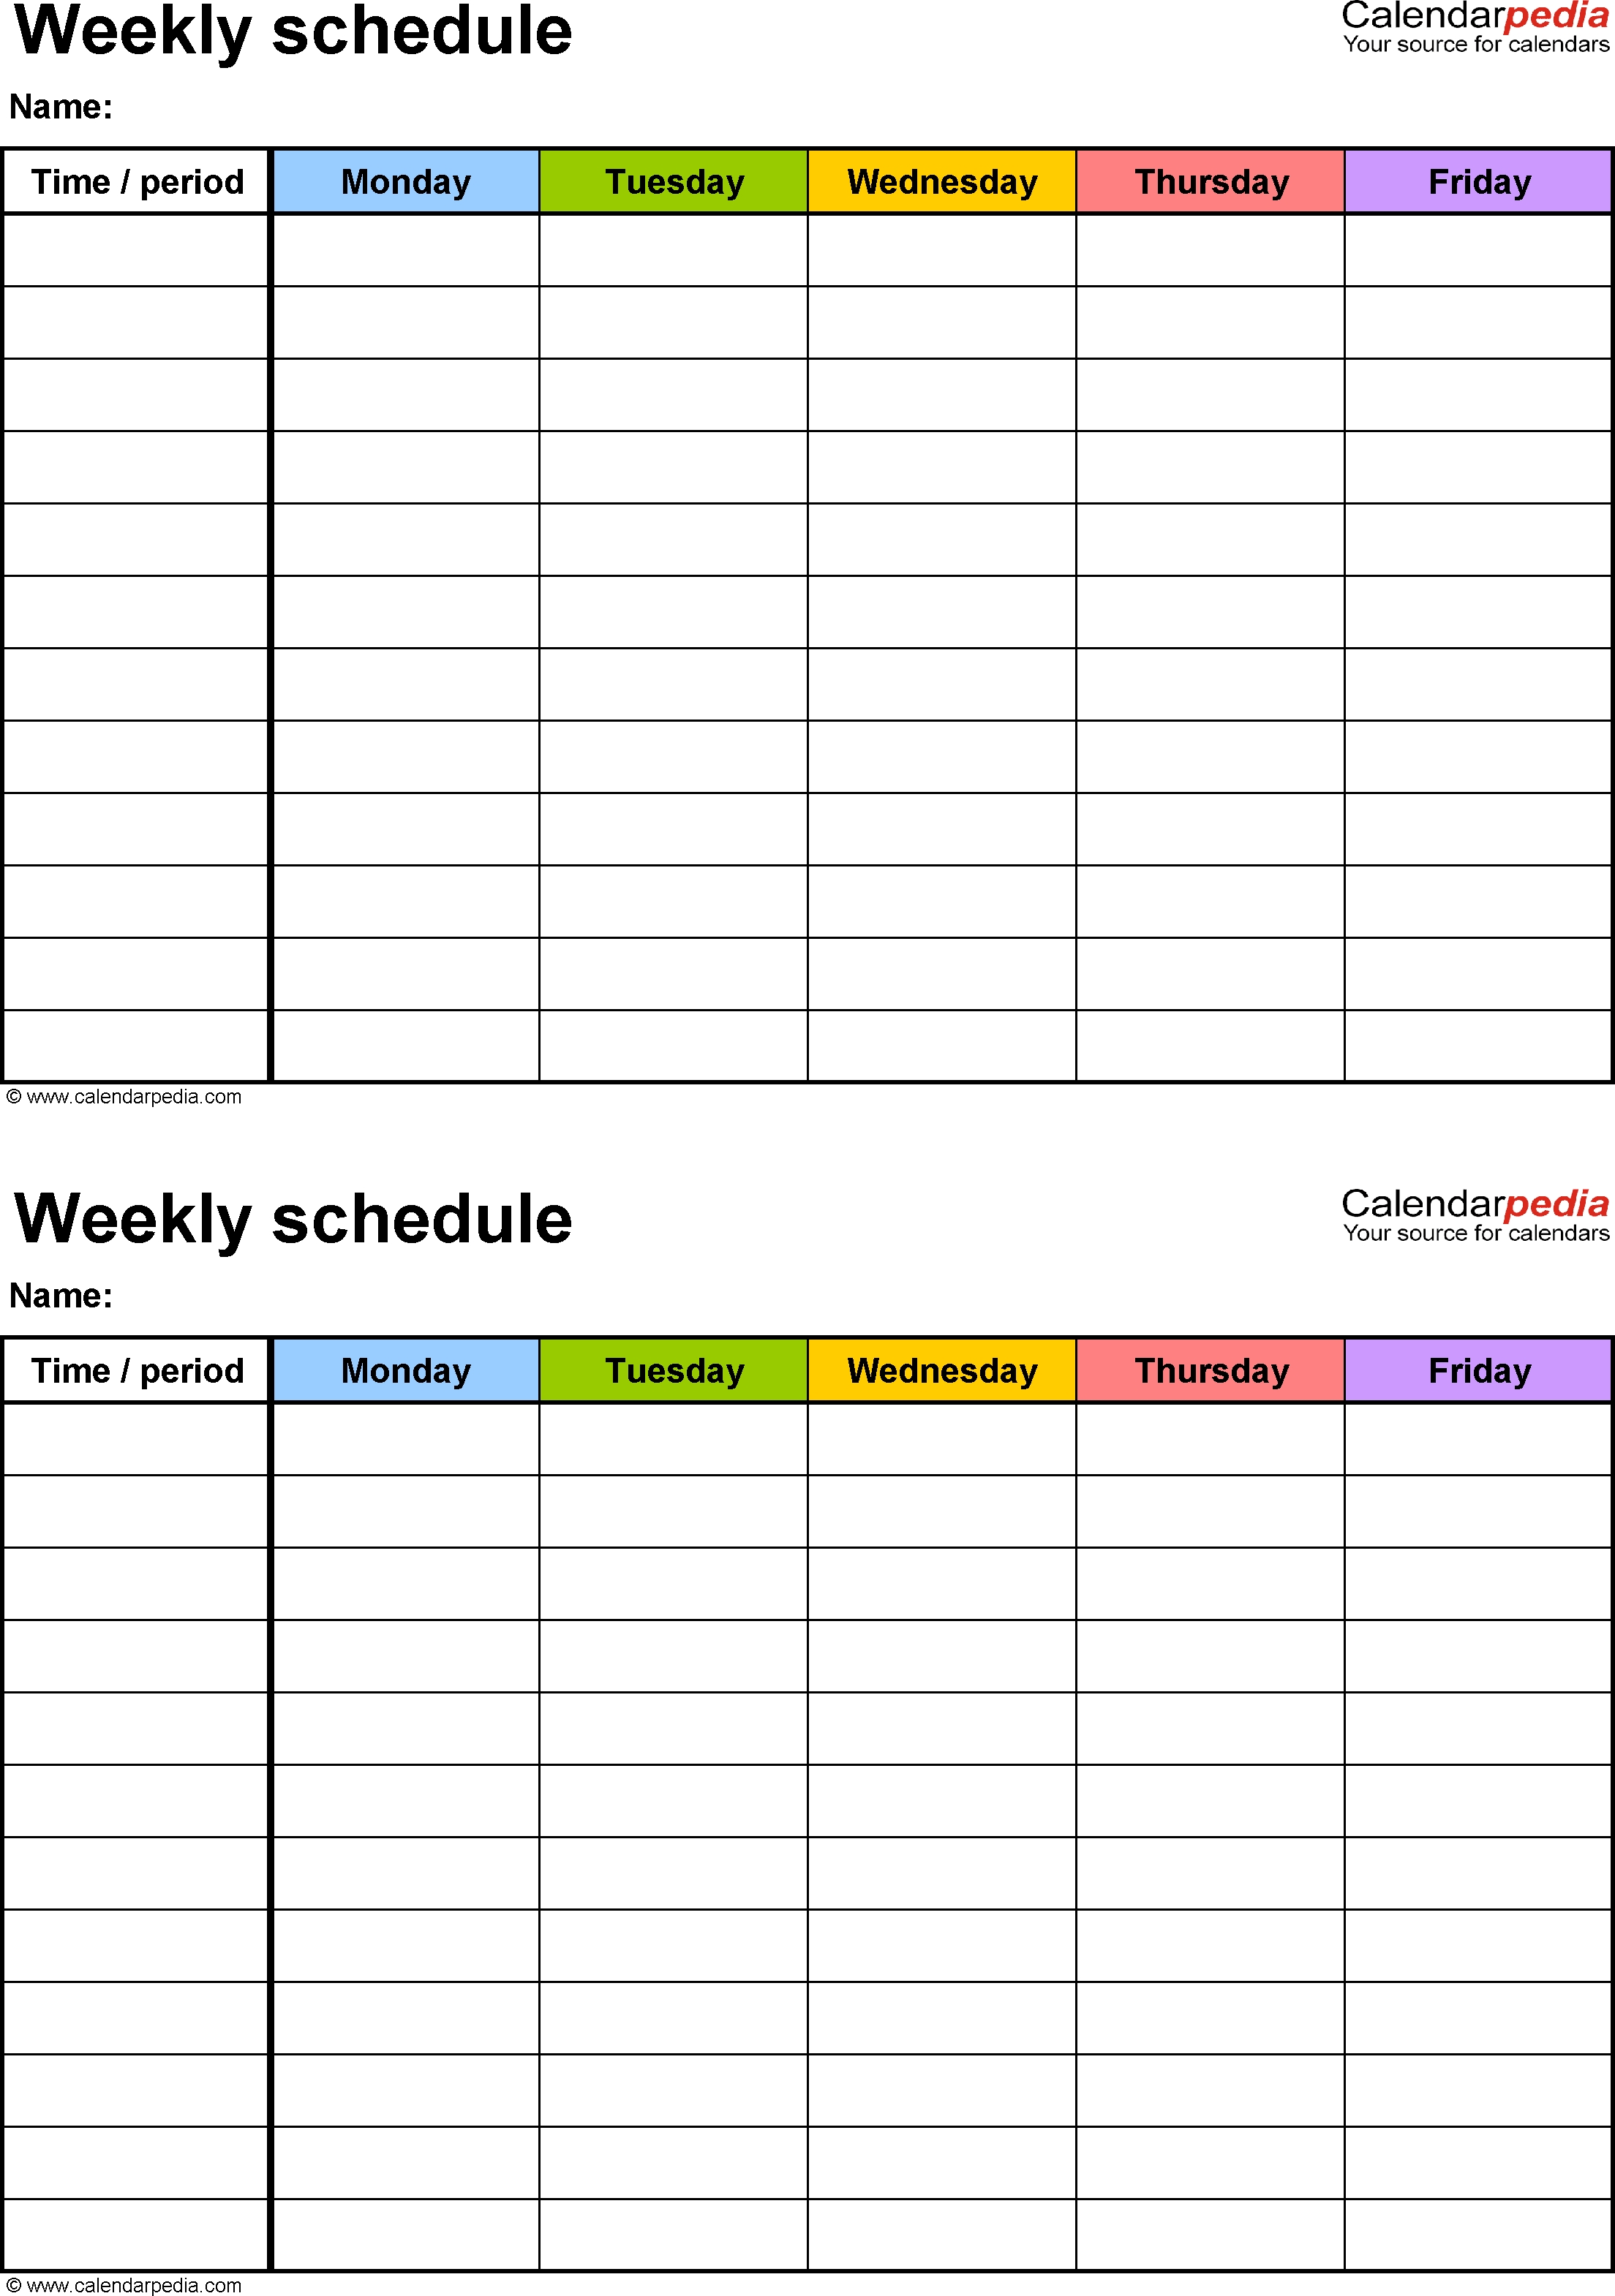 Free Weekly Schedule S For Word Blank Printable | Smorad throughout Free 2 Week Blank Printable Calendar